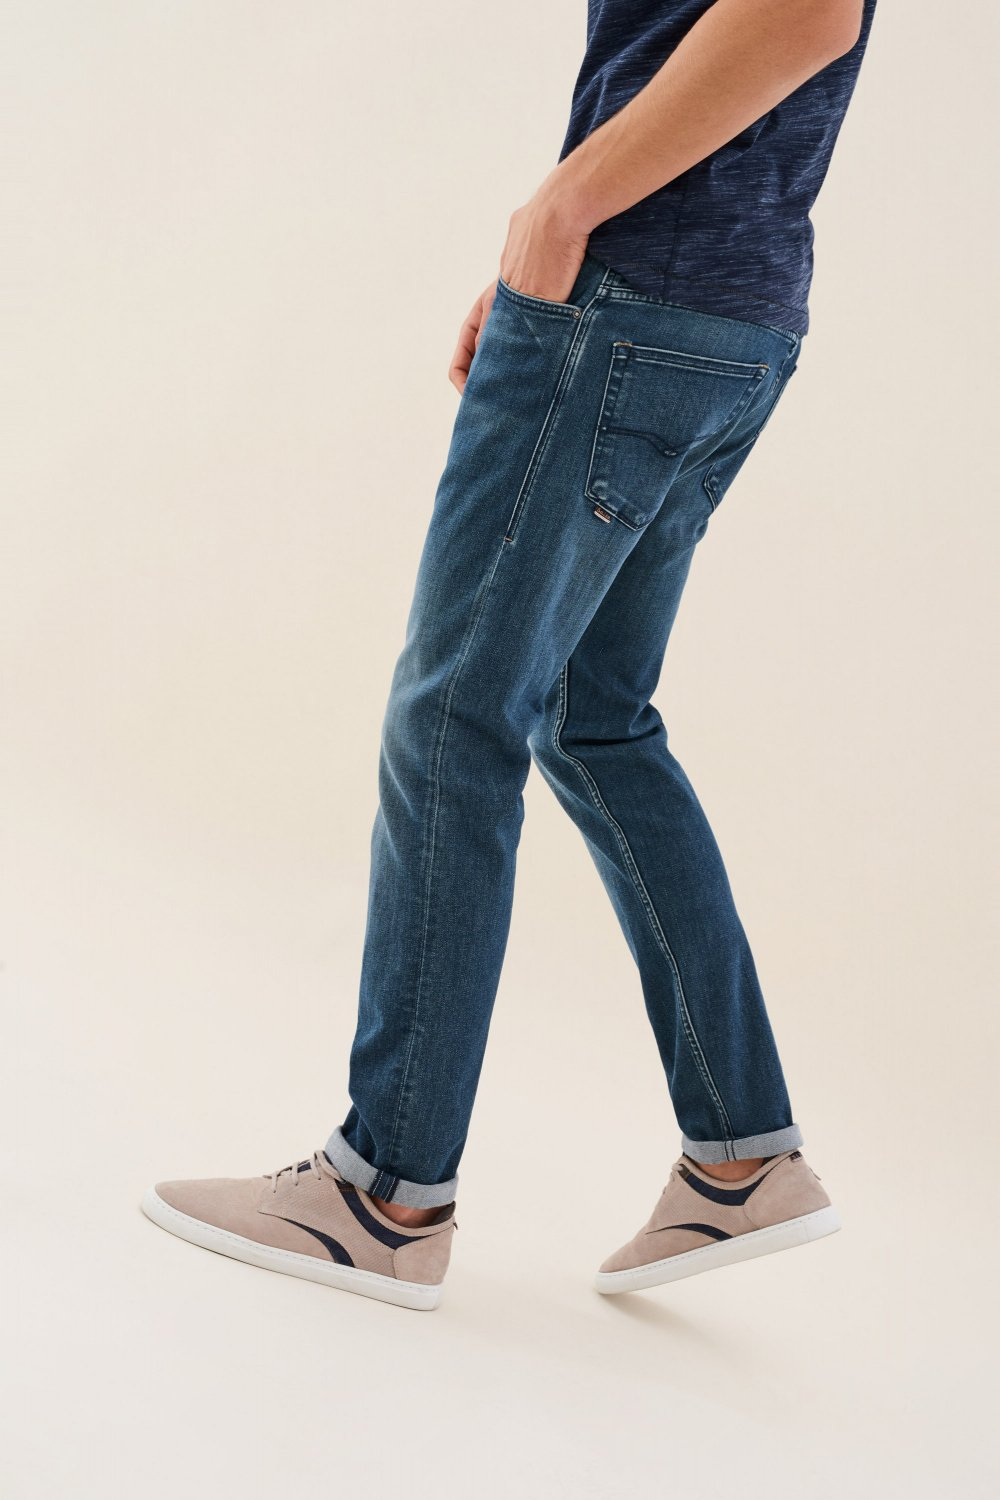 Jeans Slender, Slim Fit Carrot, warmer Denim - Salsa